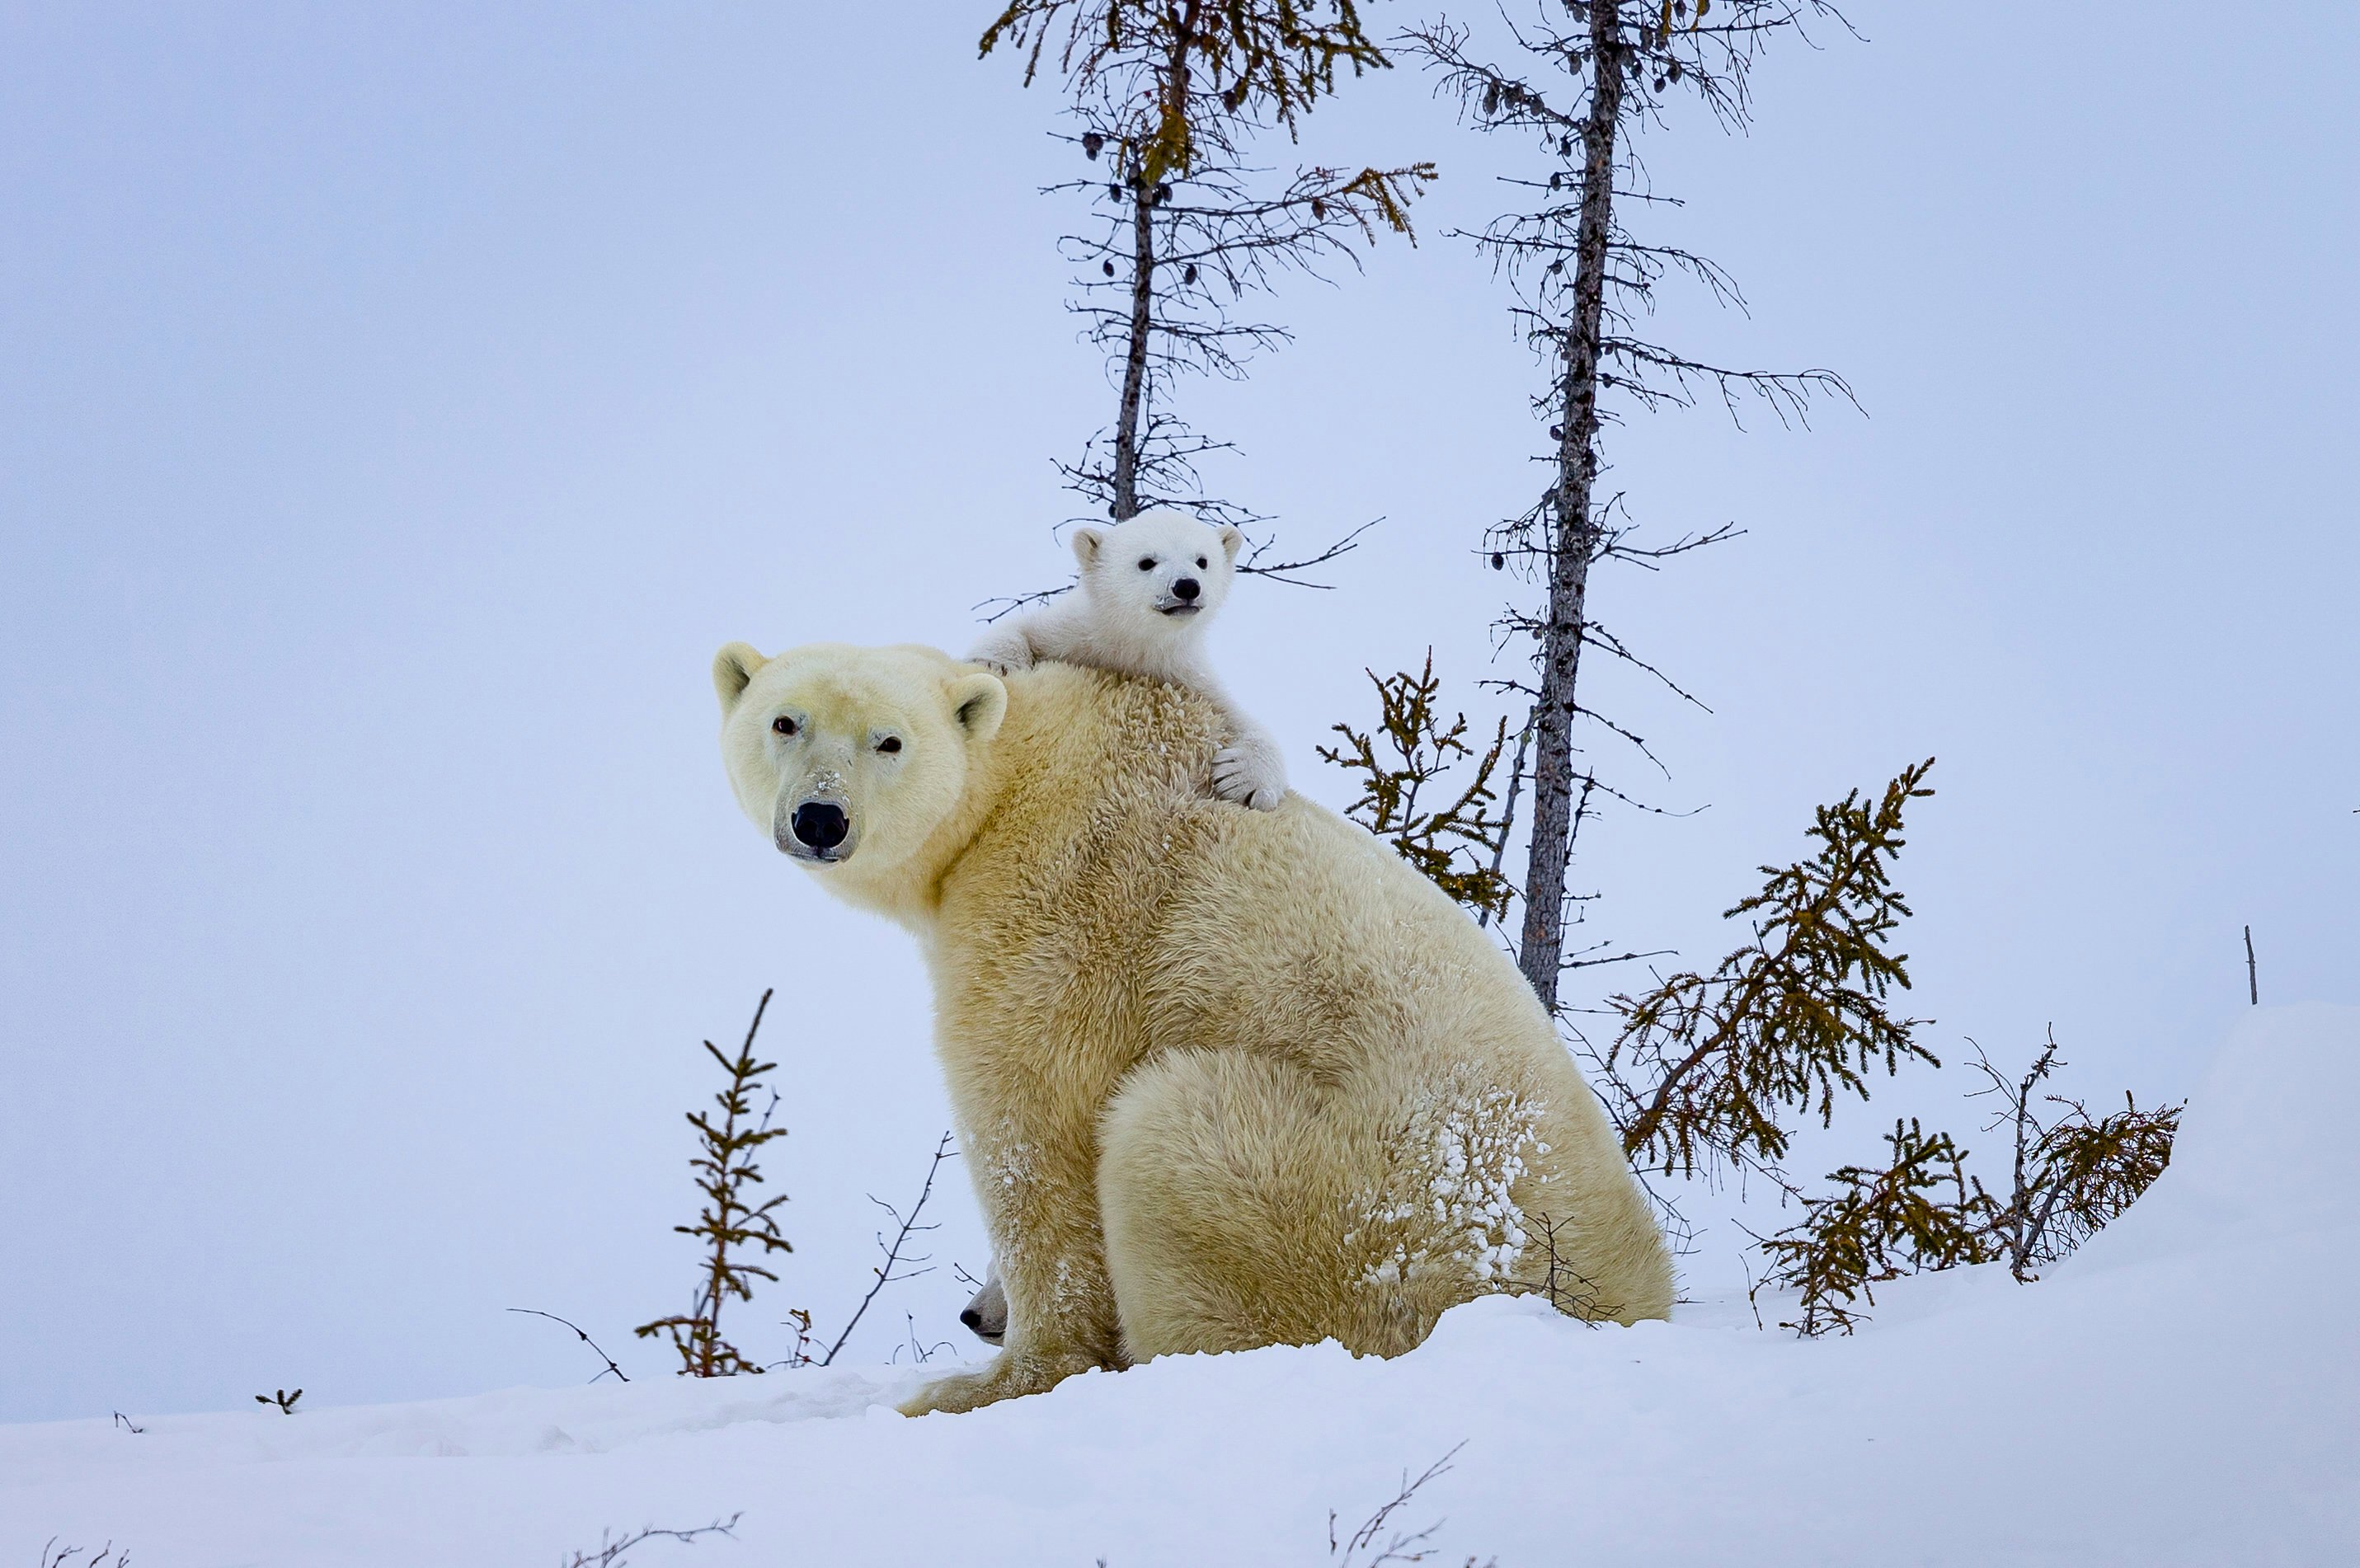 The photographer described the cubs as about the size of a West Highland Terrier